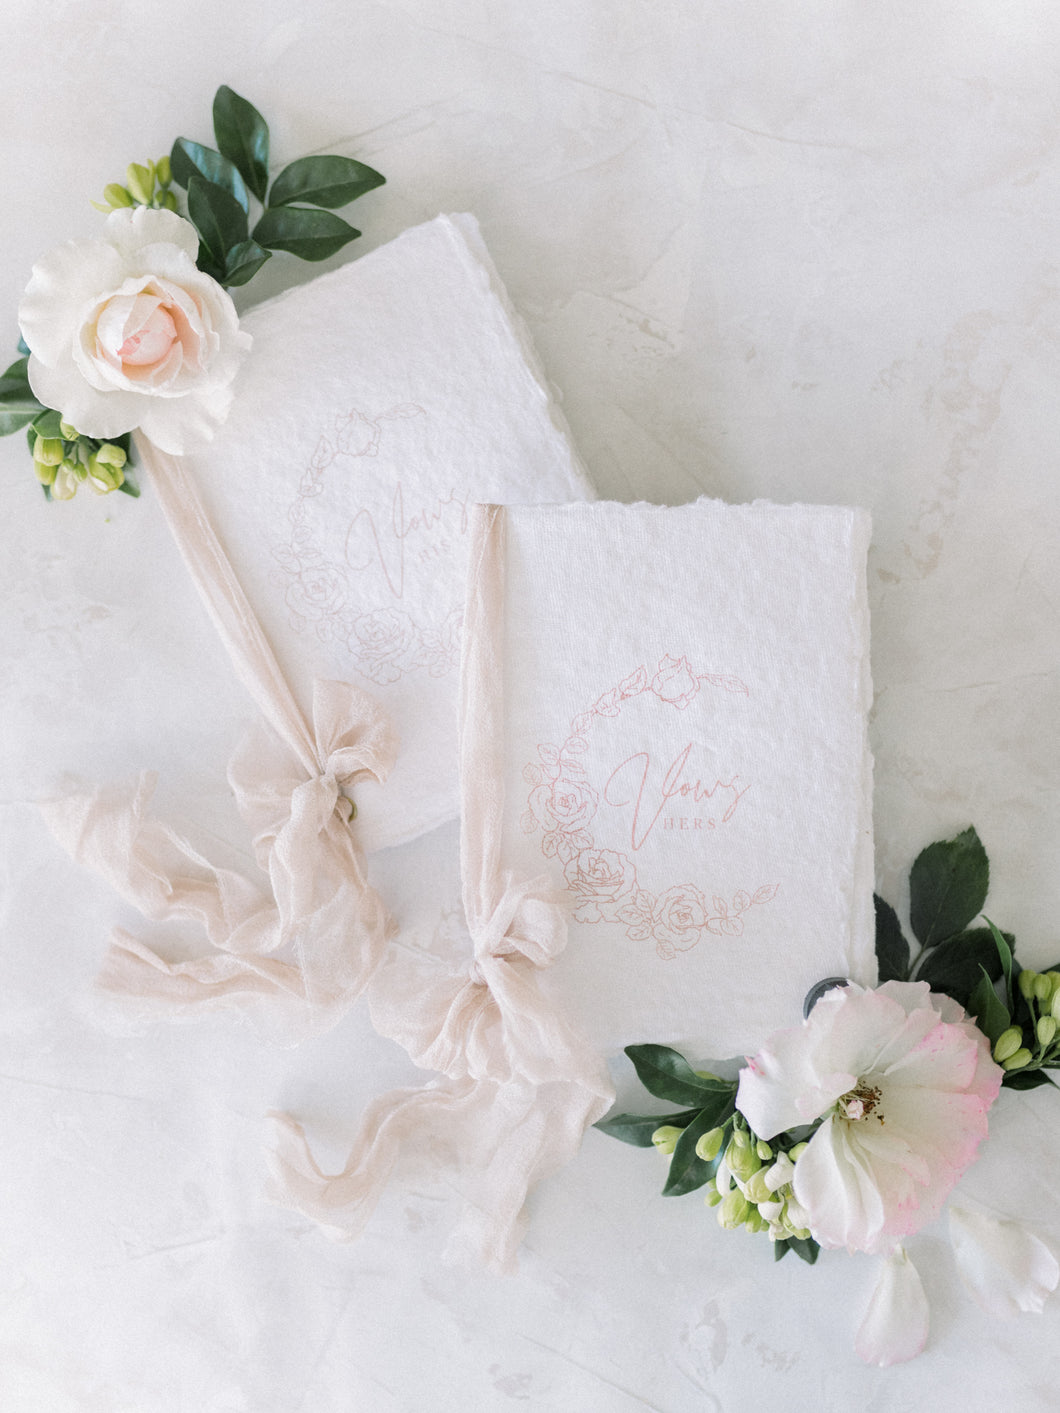 Handmade paper Vow Booklets